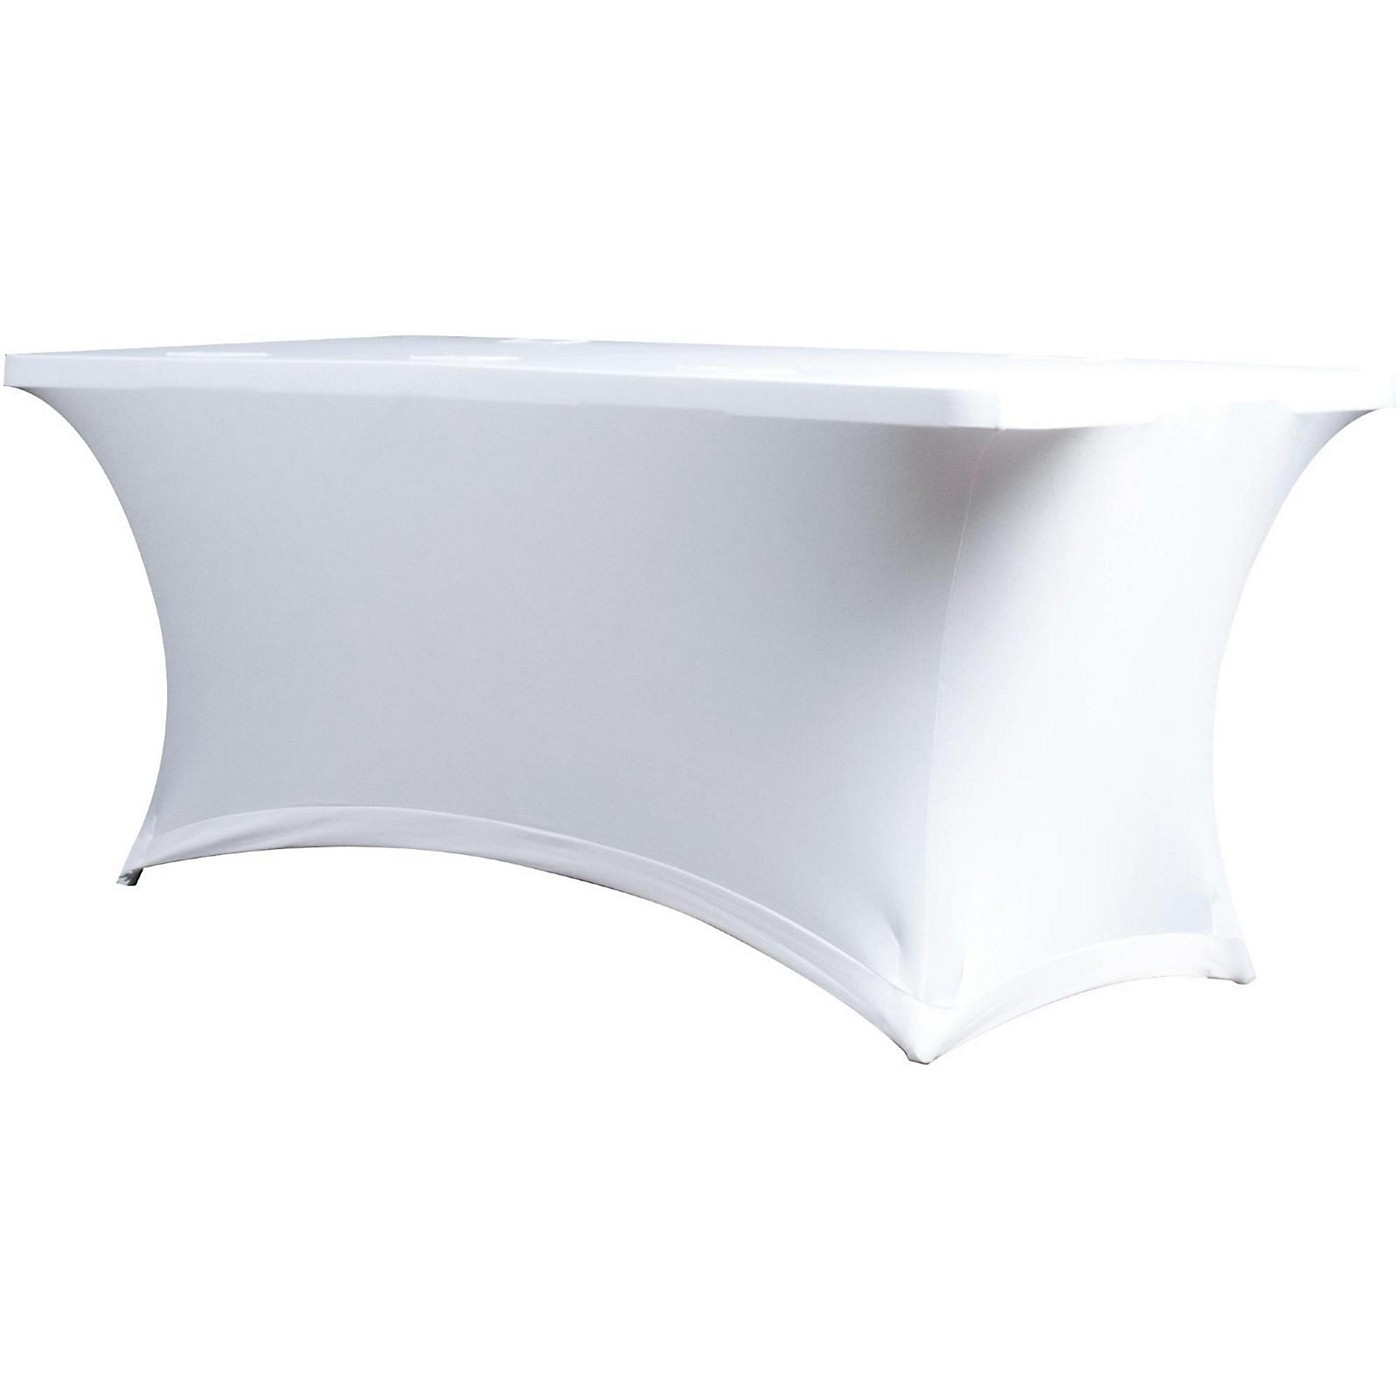 American DJ HD Table Scrim WHITE thumbnail